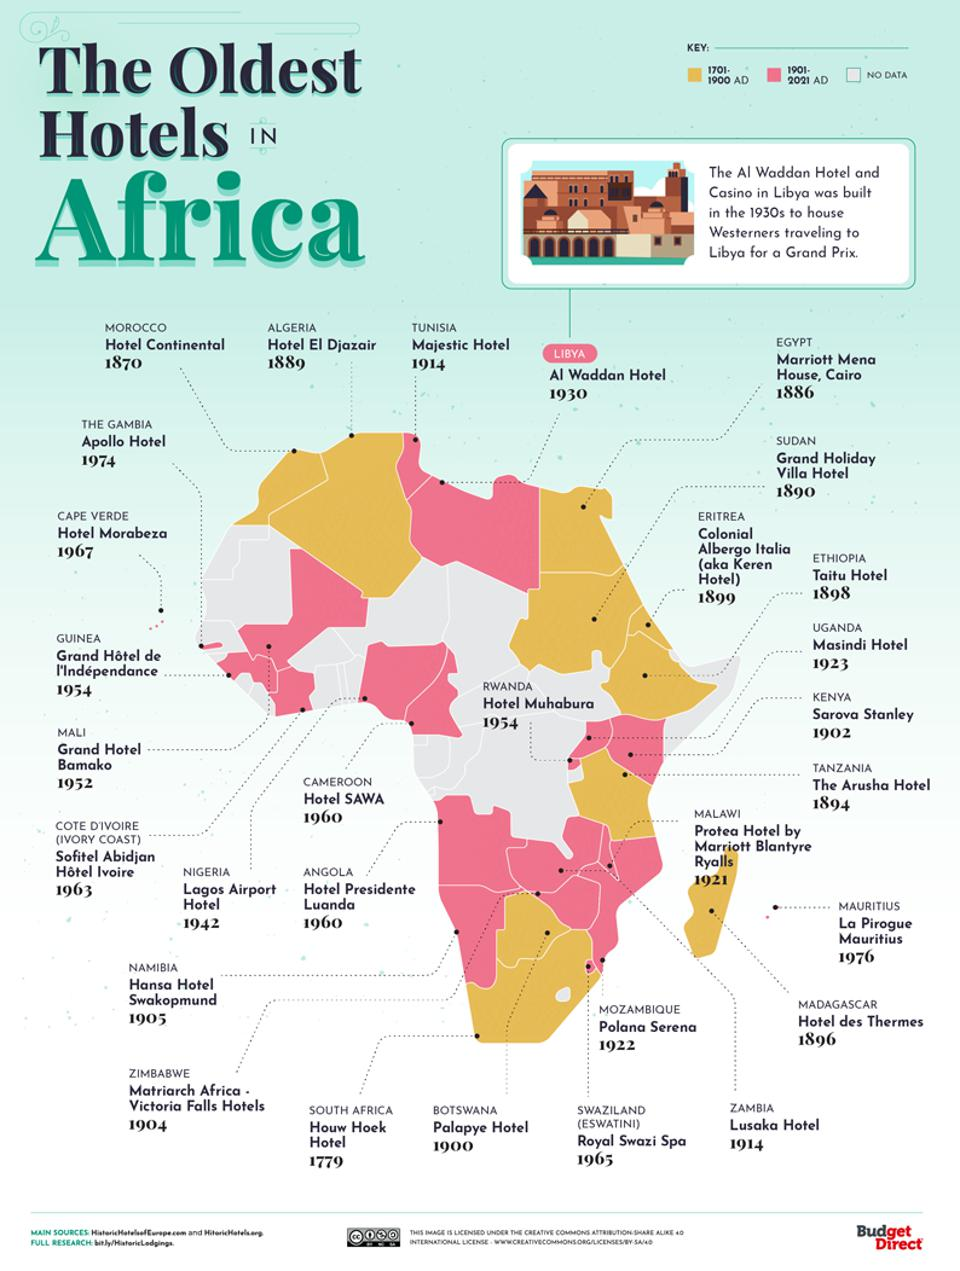 A map of the oldest hotels in Africa.